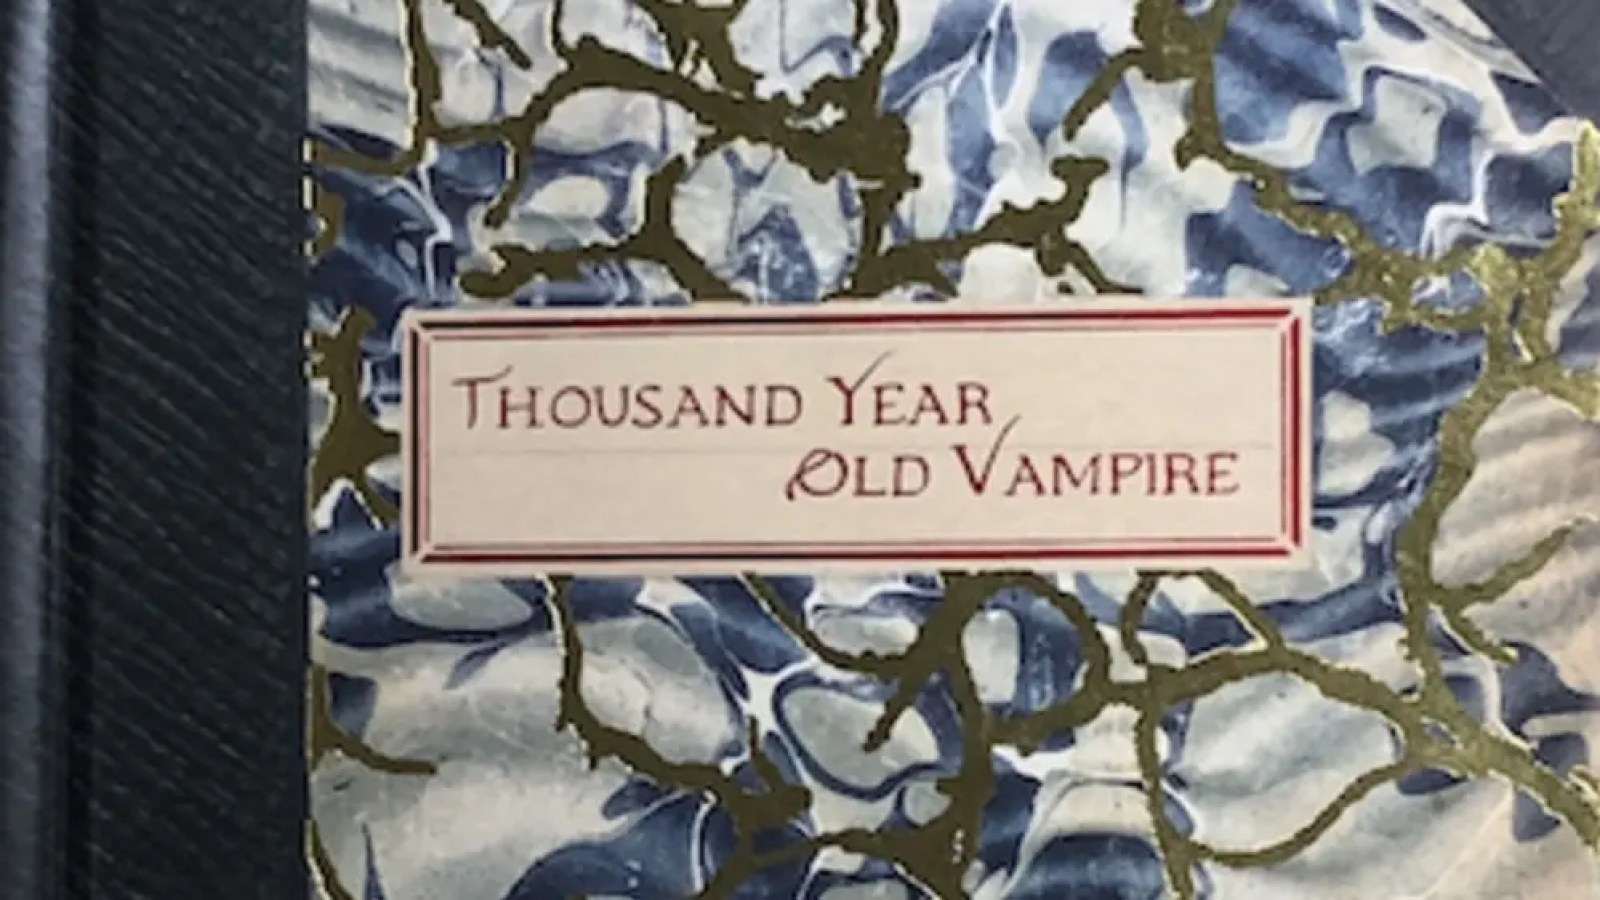 The book that contains the Thousand Year Old Vampire RPG